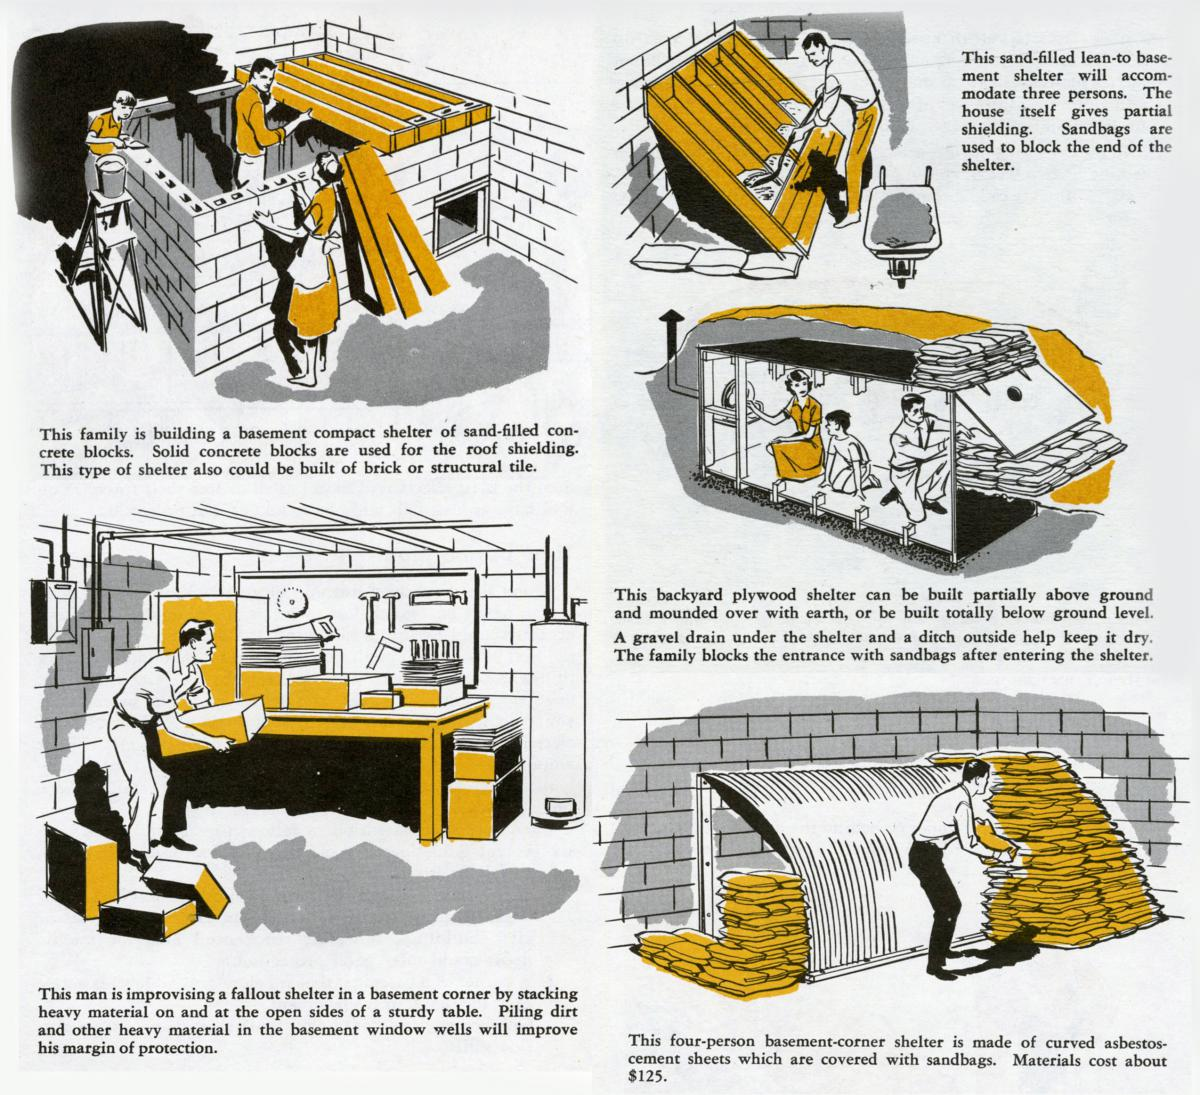 Fallout shelter ideas from the Office of Civil Defense